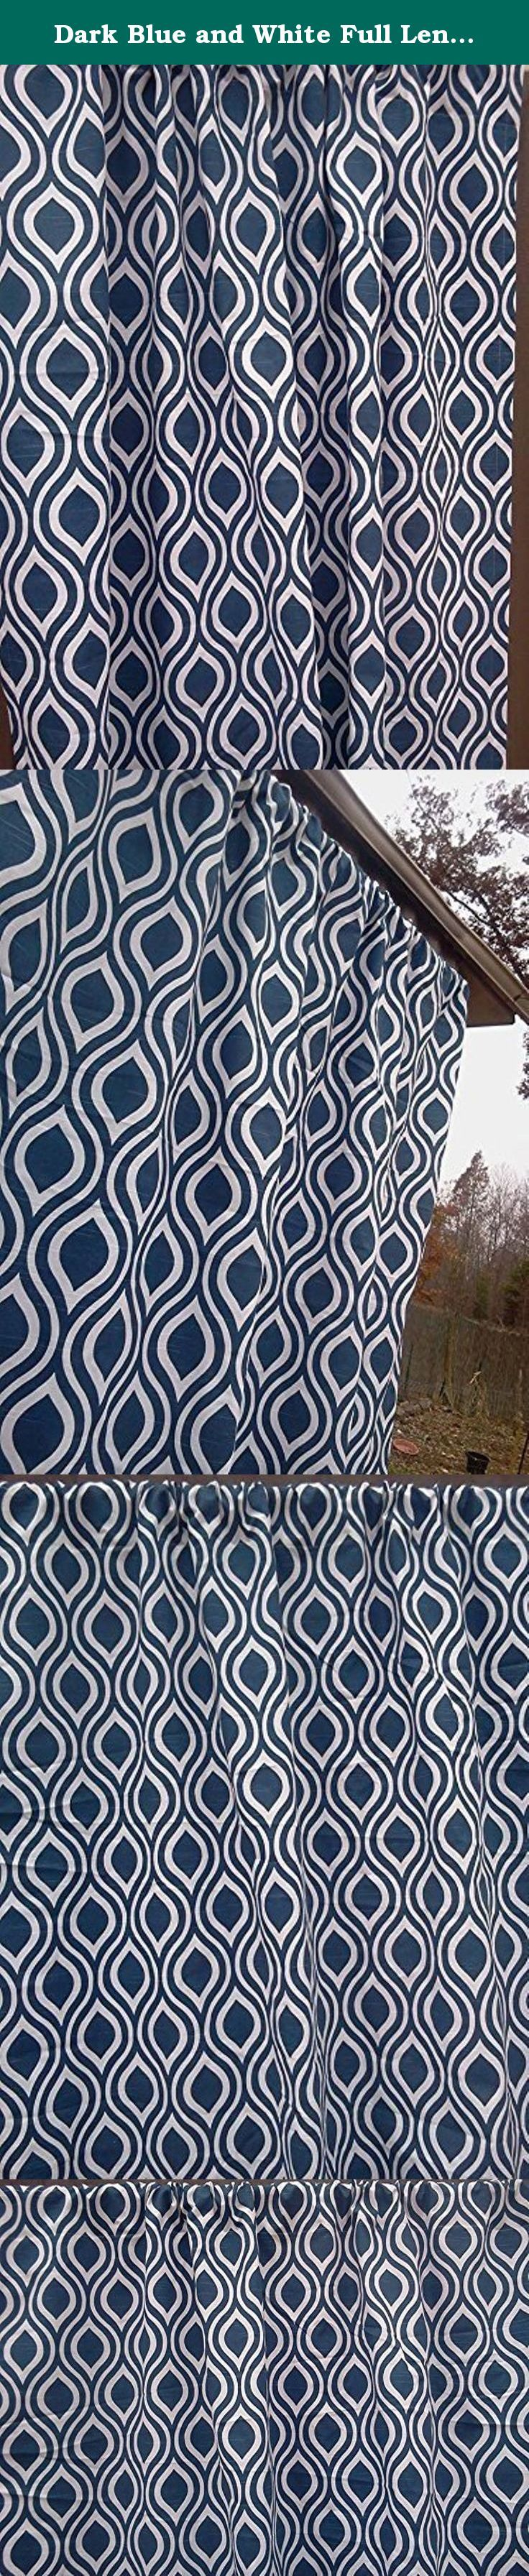 "Dark Blue and White Full Length Teardrop Curtains; Two 84"" Full Length Curtains, 100% quality cotton Premier Prints drapery fabric; 52"" Wide by 84"" Long; Dark Blue, heavy Weight, Full Length Curtains. Dark Blue and White Full Length Teardrop Curtains, Two 84"" Full Length Curtains; 100% quality cotton, Premier Prints home décor weight drapery fabric. Please allow 7-14 days for delivery, as the curtains are handmade after your purchase to keep inventory costs low. Keeping inventory costs…"